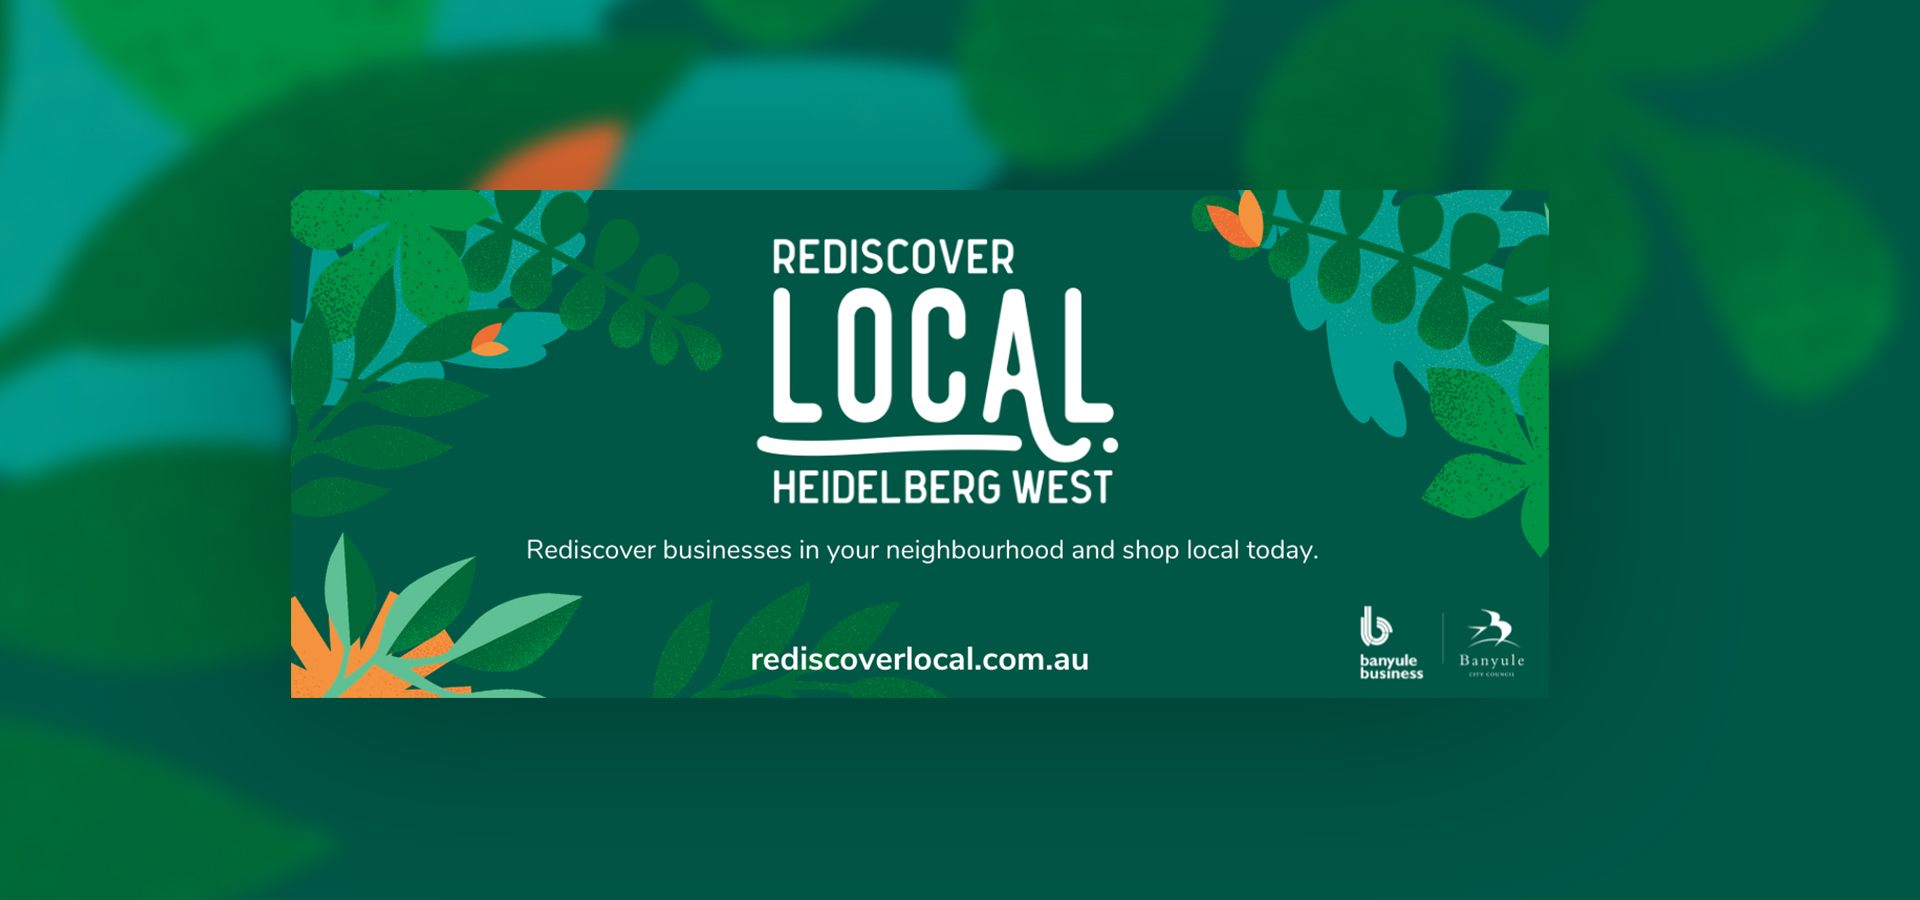 Rediscover Local Home Banner – Heidelberg West